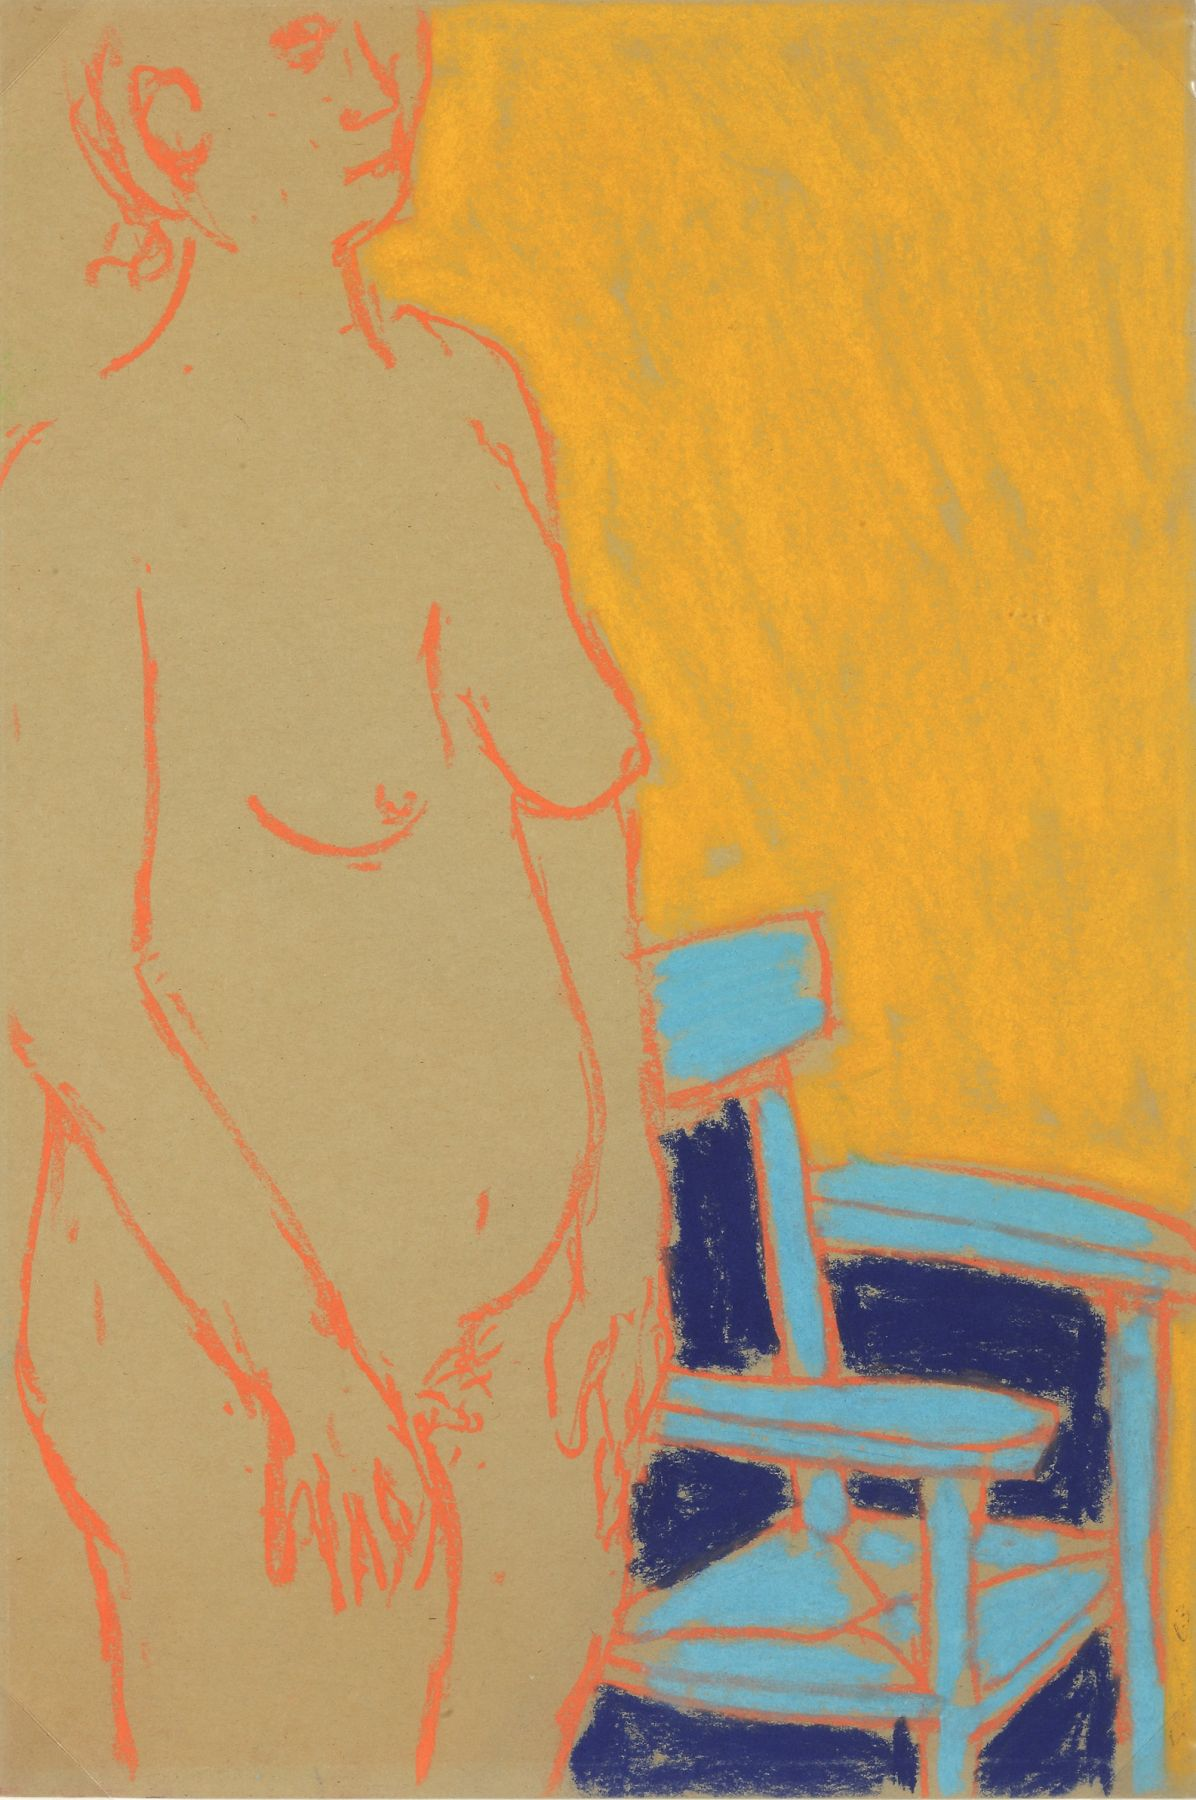 George Segal, Untitled (Nude with Blue Chair), 1965, Pastel on paper 18 x 12 inches